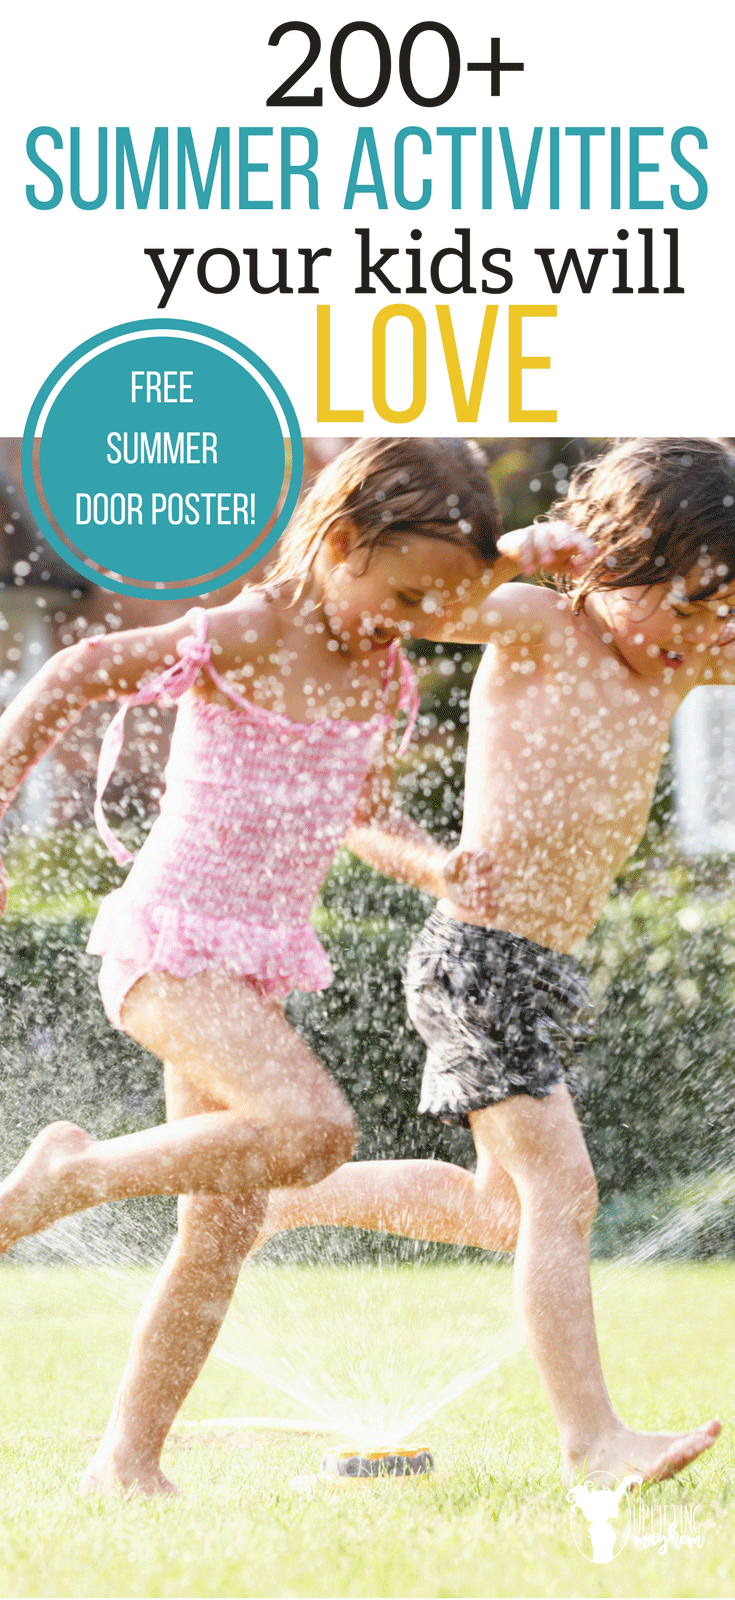 Summer Activities your kids will love! Help break the boredom cycle. When your kids say they are bored, send them to this list of 200+ summer activities